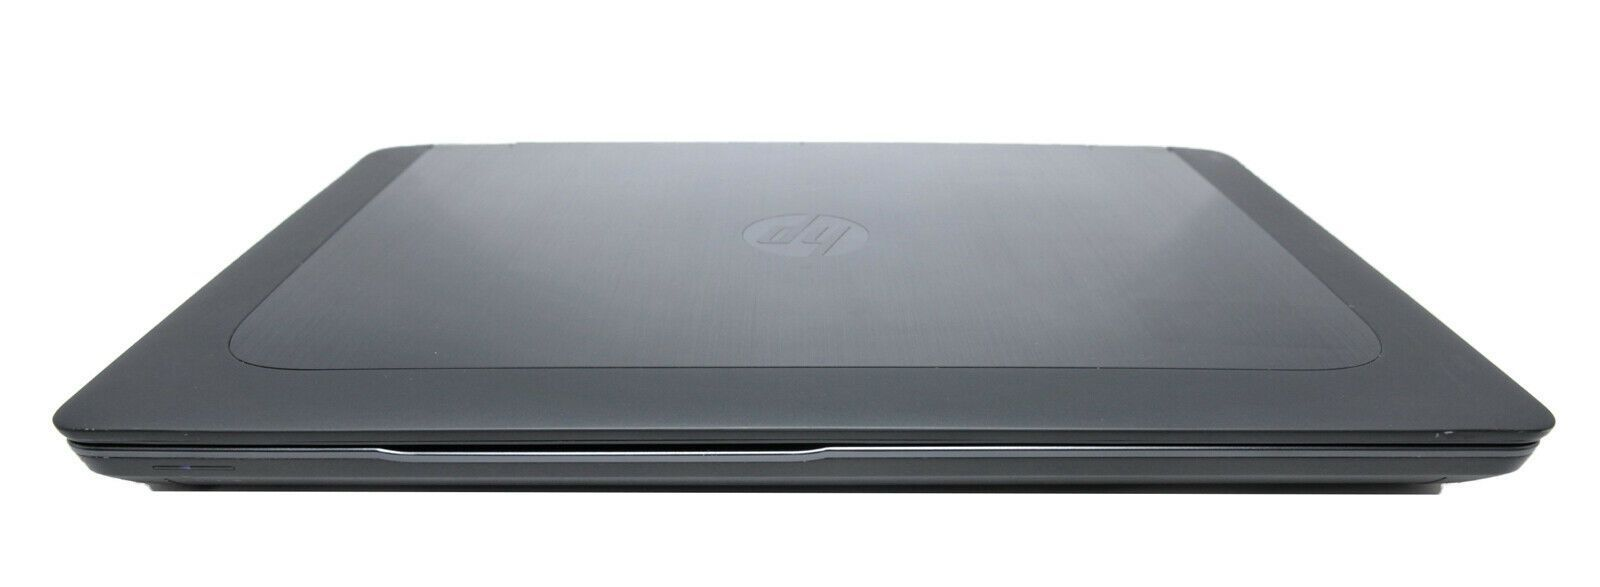 HP ZBook 15 G2 CAD Laptop: 32GB RAM, 256GB SSD+750GB HDD, Core i7, Warranty, VAT - CruiseTech